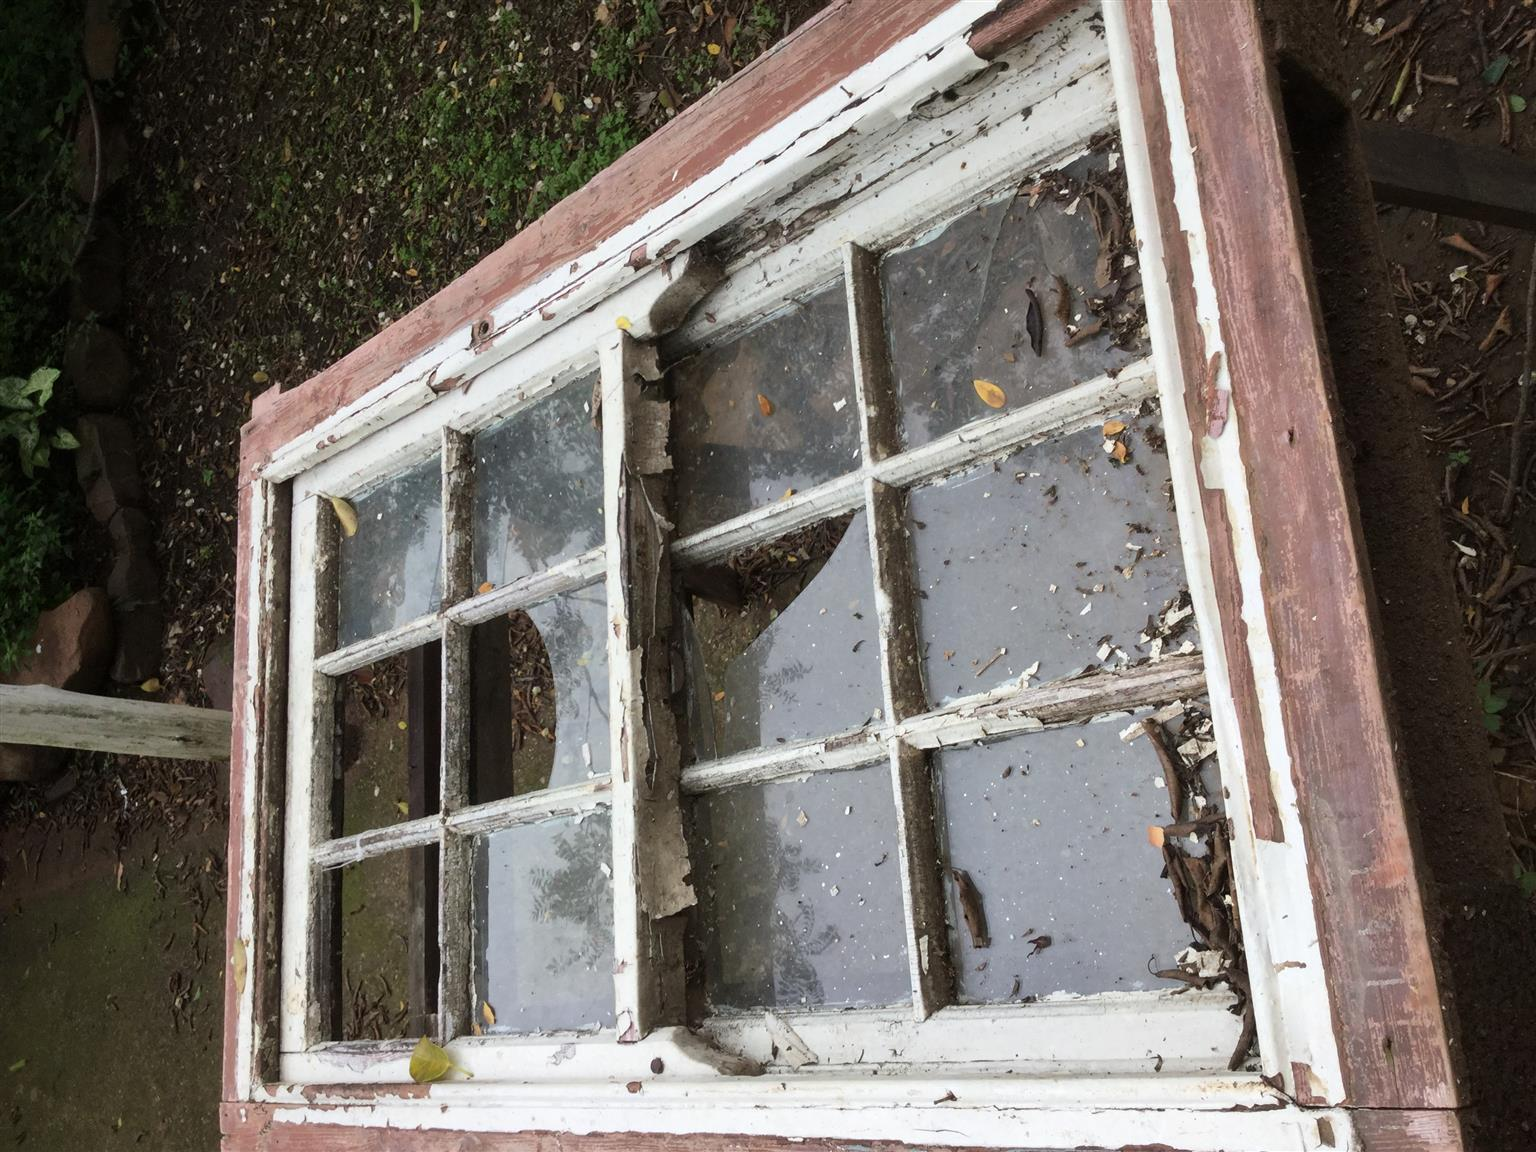 Hey Judes for this sash window is Oregon